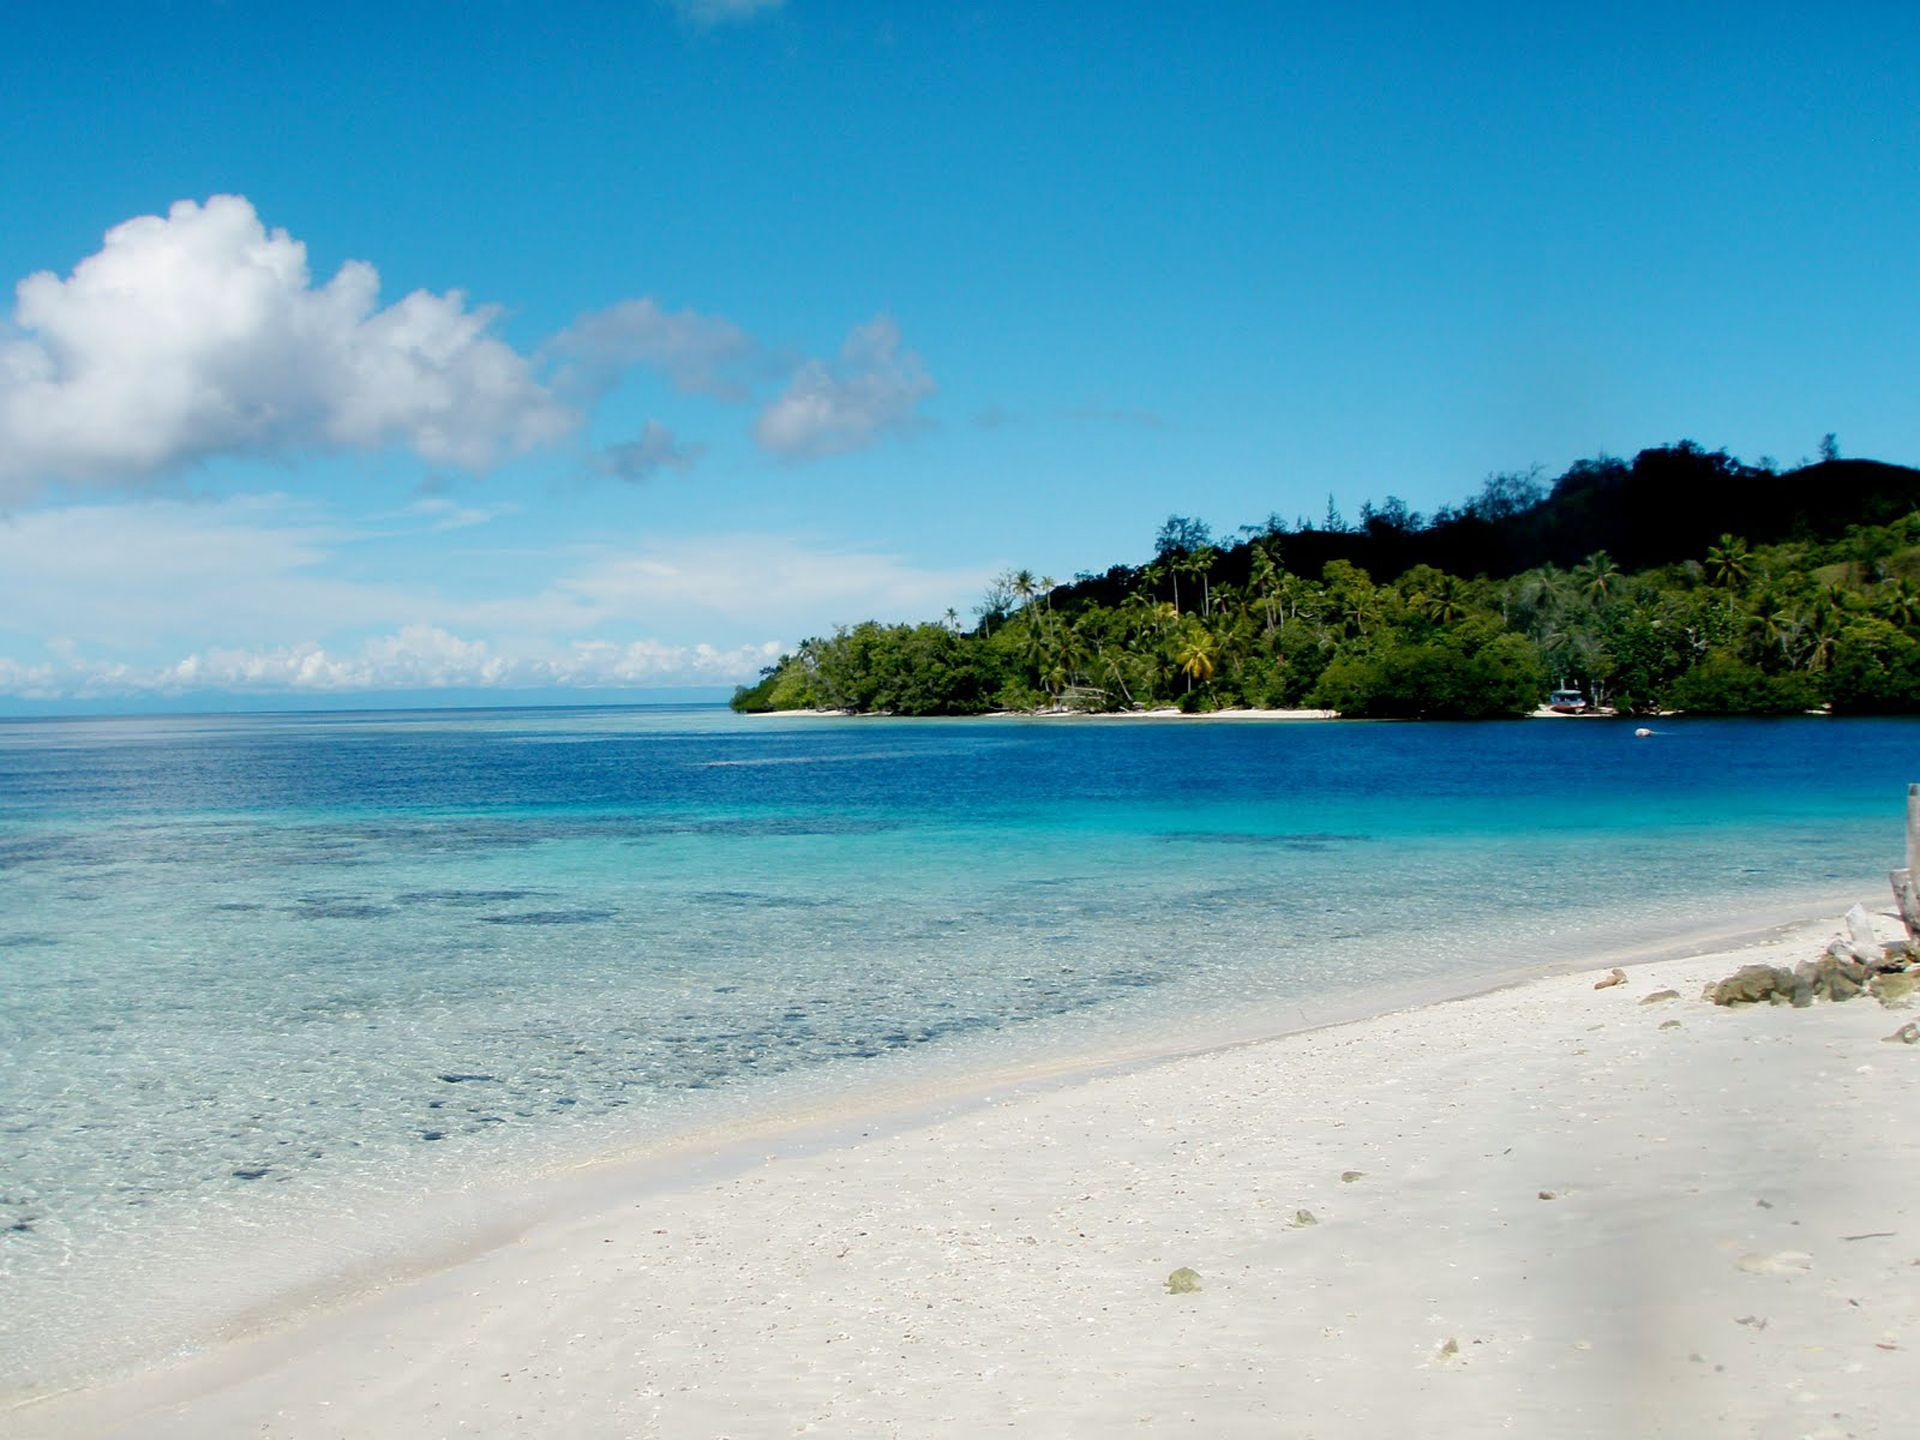 Solomon Islands Beach Wallpaper Hd